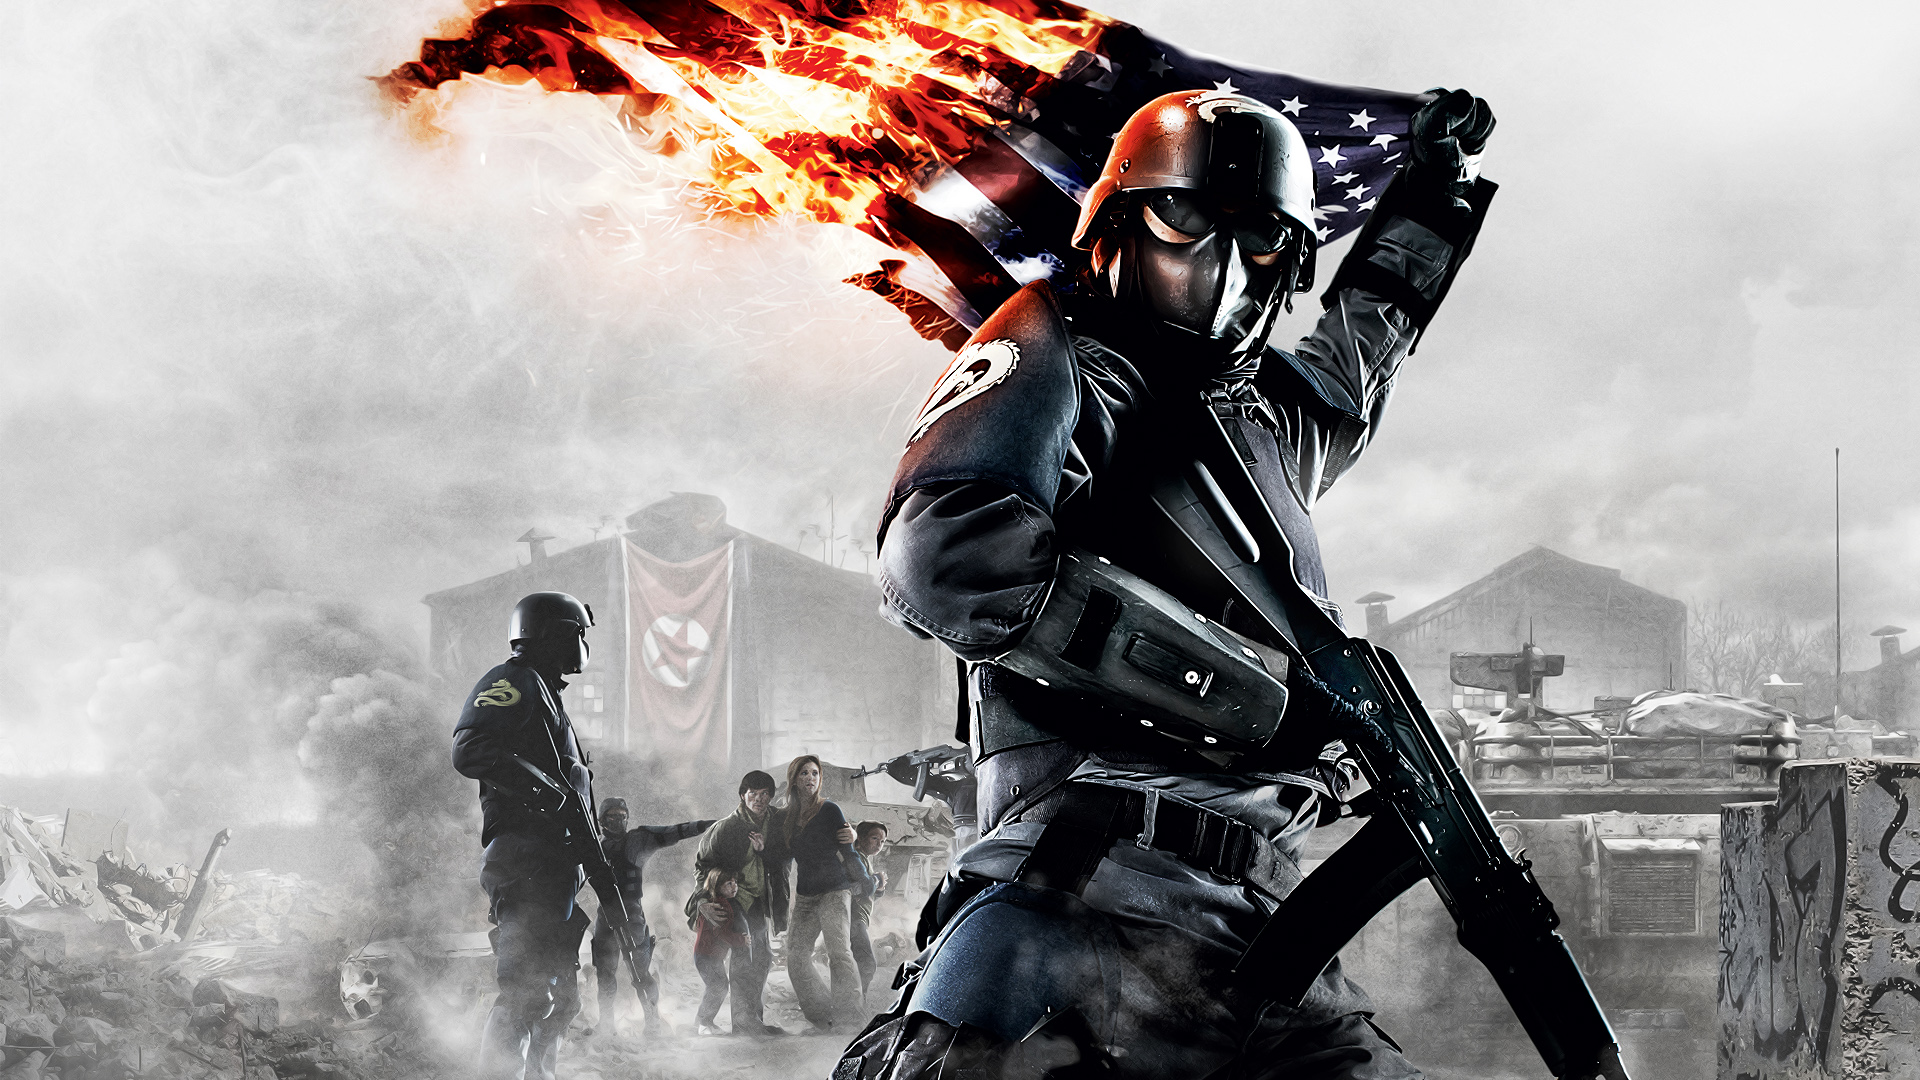 game background images hd